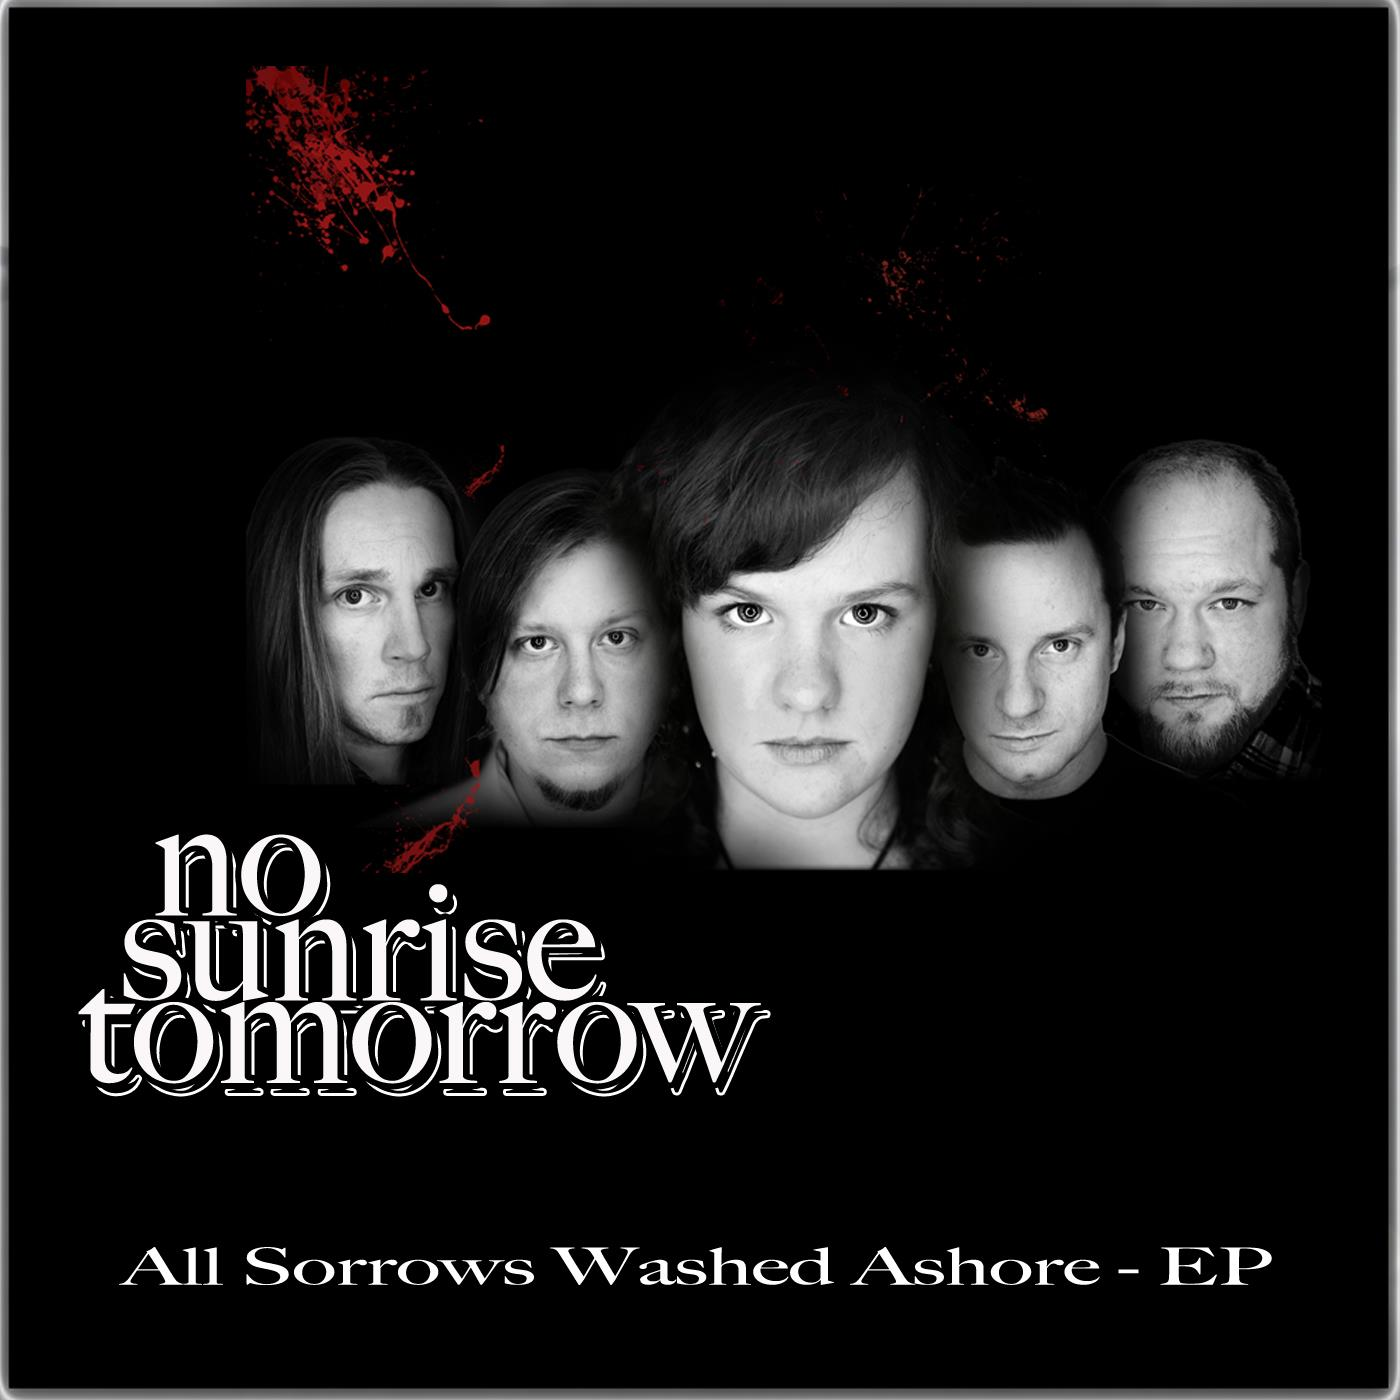 All Sorrows Washed Ashore - EP